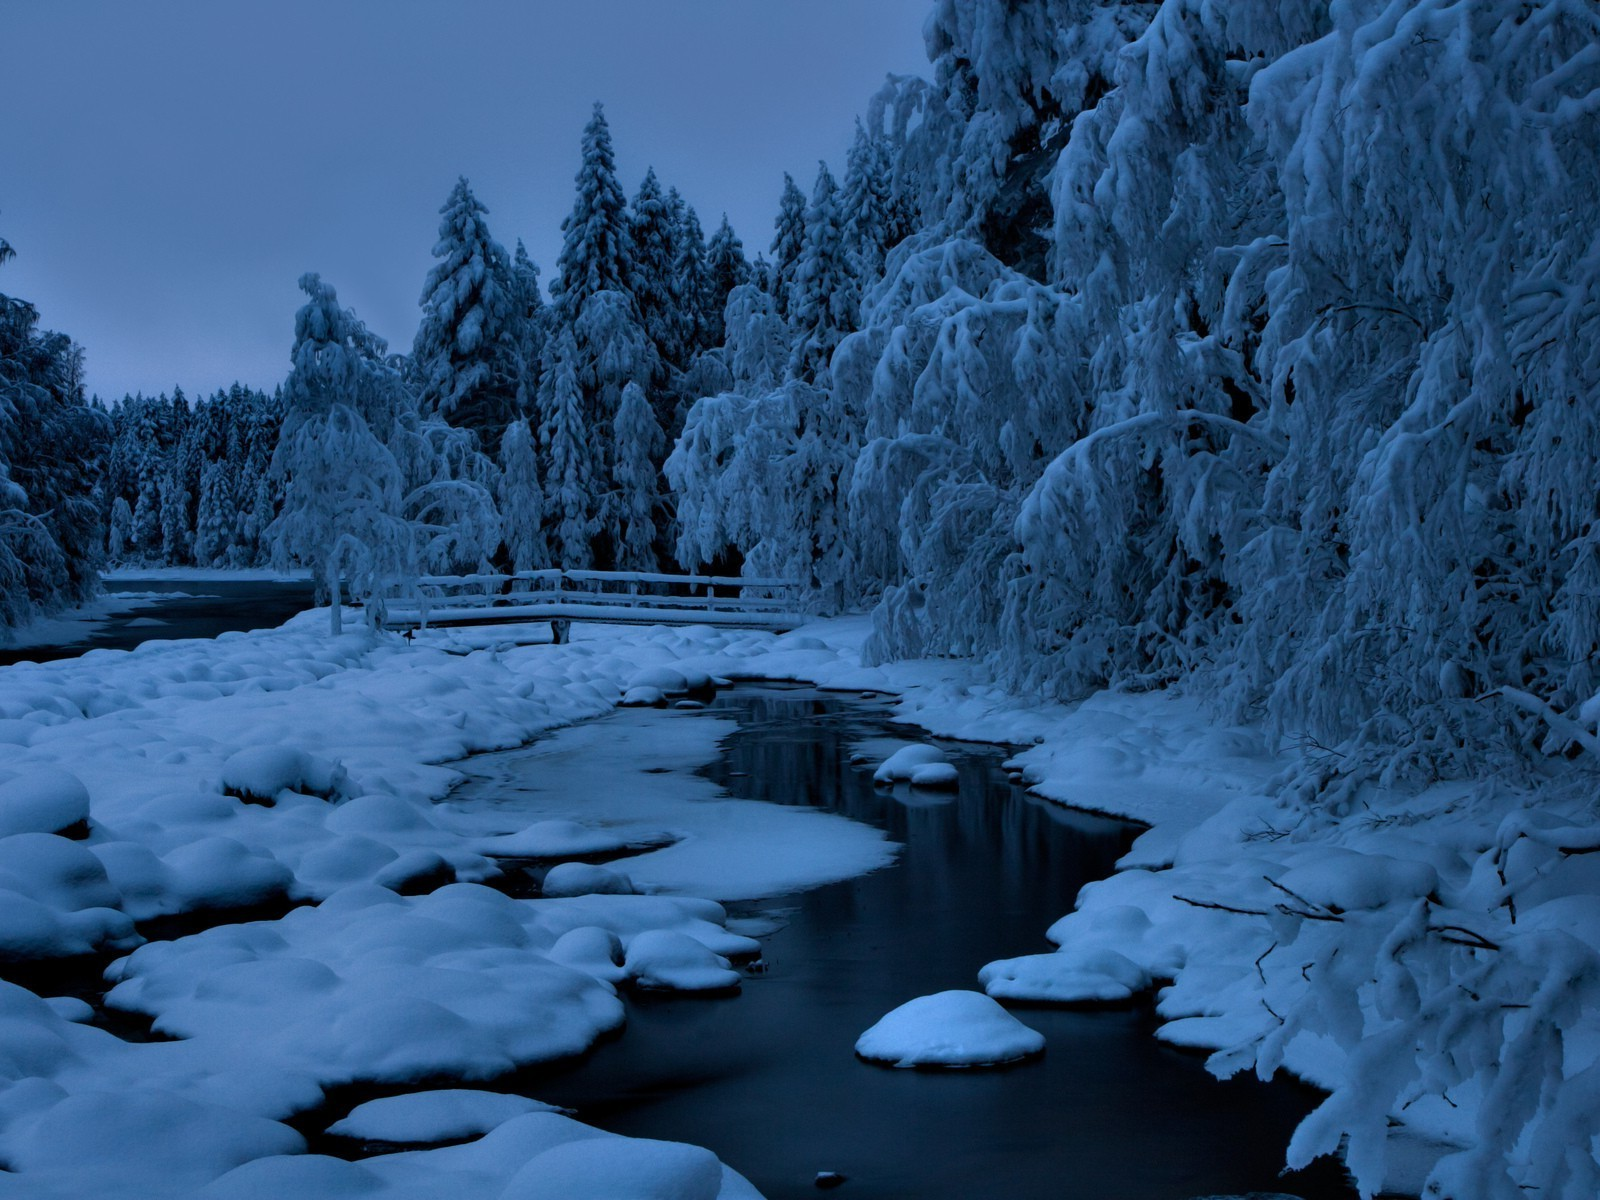 rivers ponds and streams snow winter ice cold frost wood frozen nature water landscape outdoors frosty tree river